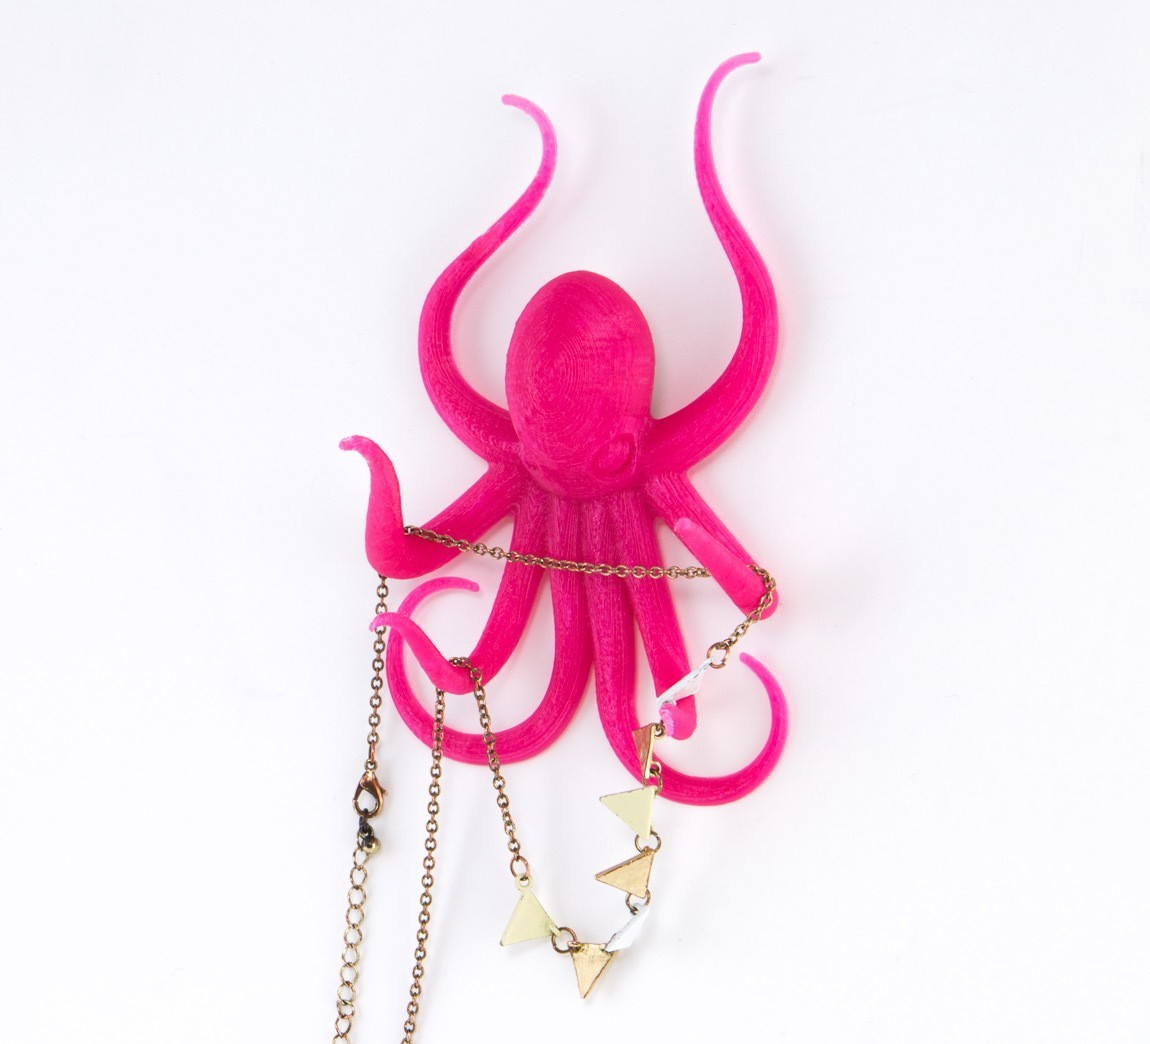 6fb4681b6ff4912a752f4cd859481d05_1446492344219_NMD000311-194_@2x.jpg Download free STL file Octopus Hanger • 3D printable object, Hom3d